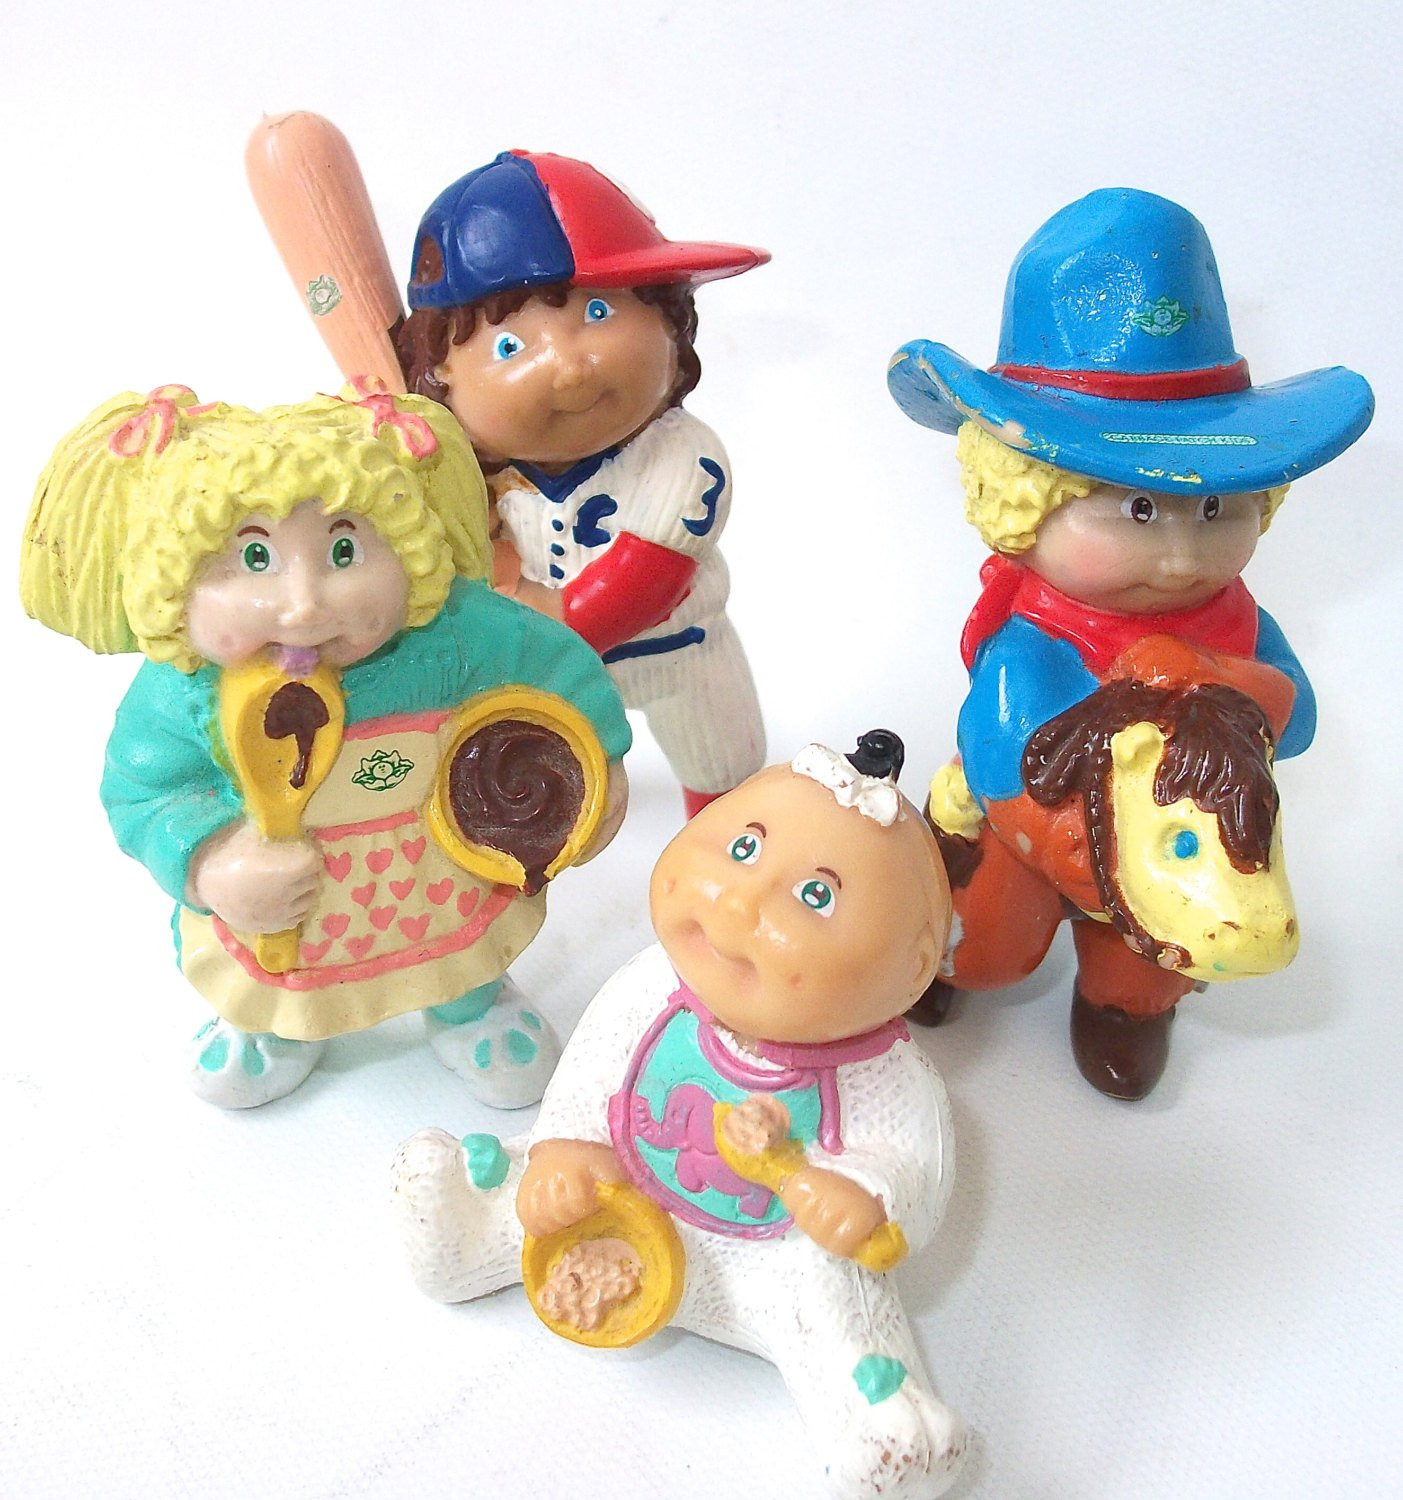 Vintage Cabbage Patch Kids Doll Figures Cabbage by